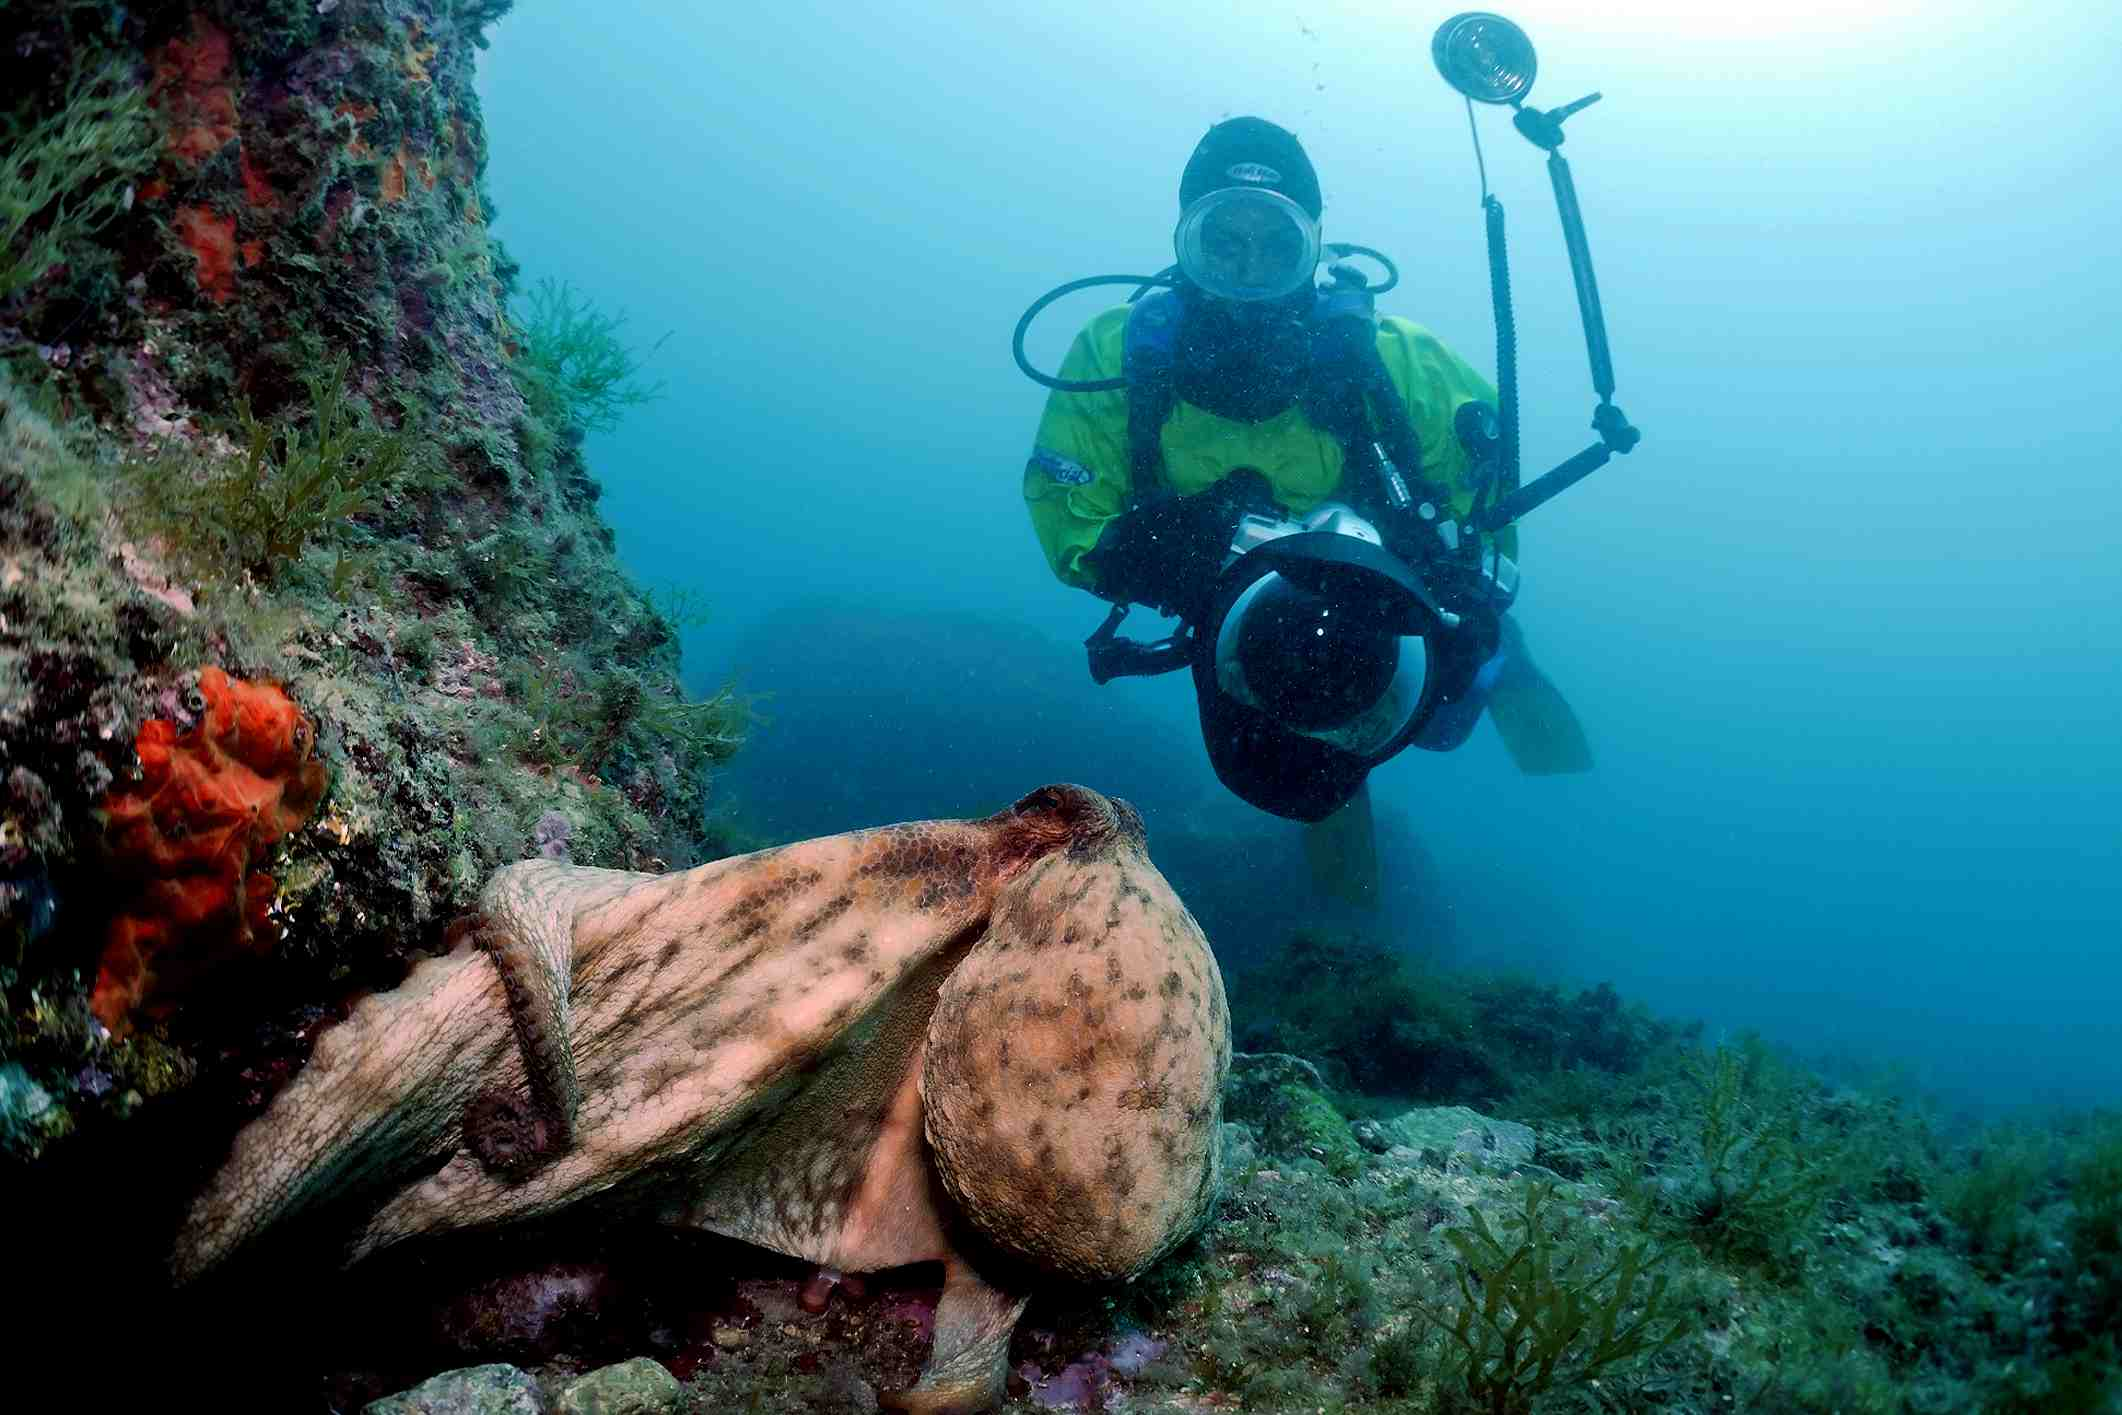 Scuba Diving Buoyancy Control Advice